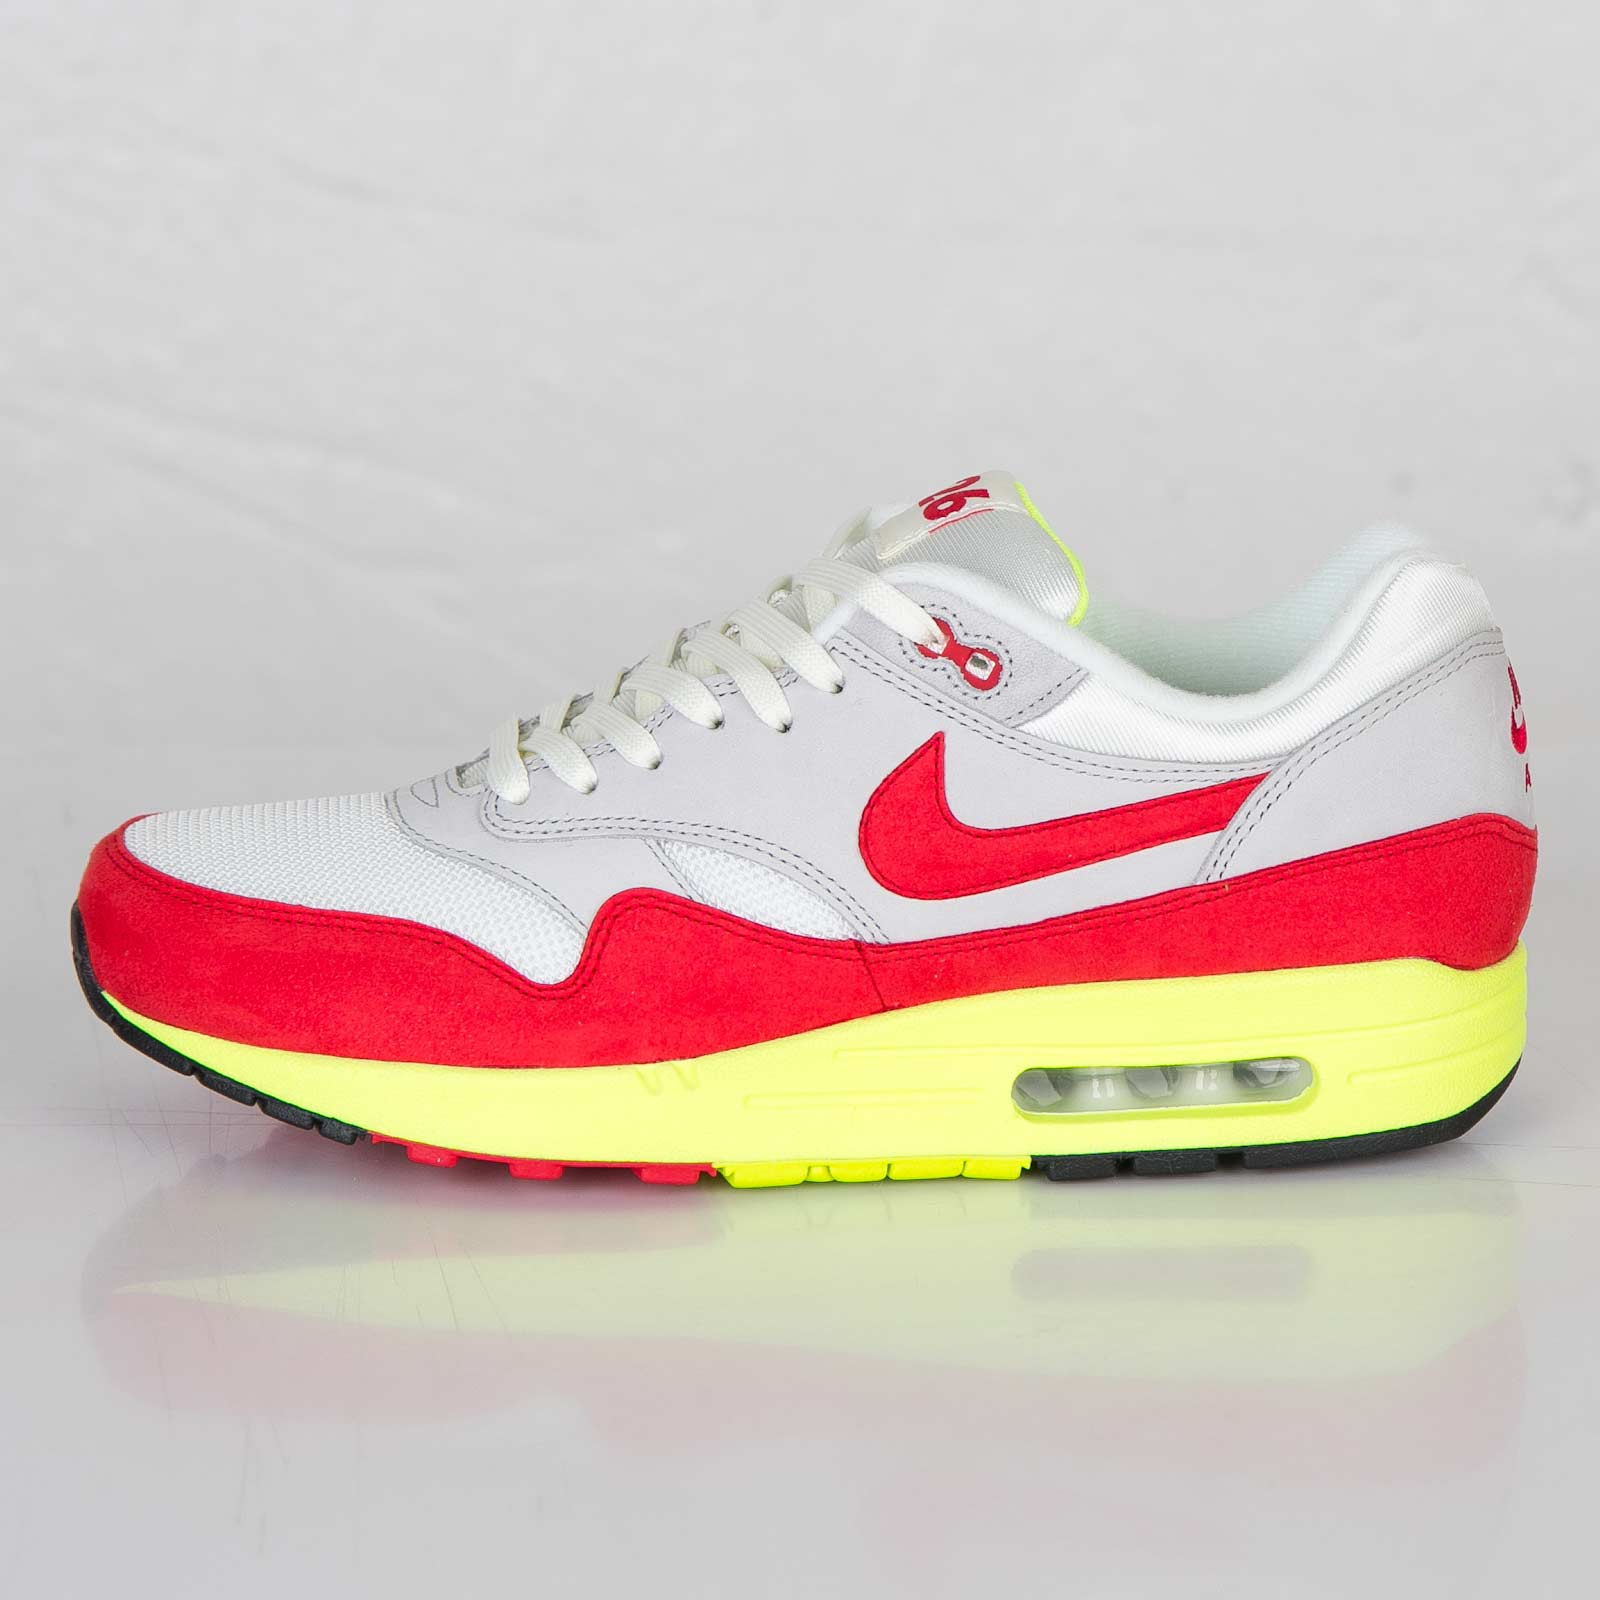 purchase cheap a8c42 2c967 Nike Air Max 1 Premium QS - 665873-106 - Sneakersnstuff   sneakers    streetwear online since 1999